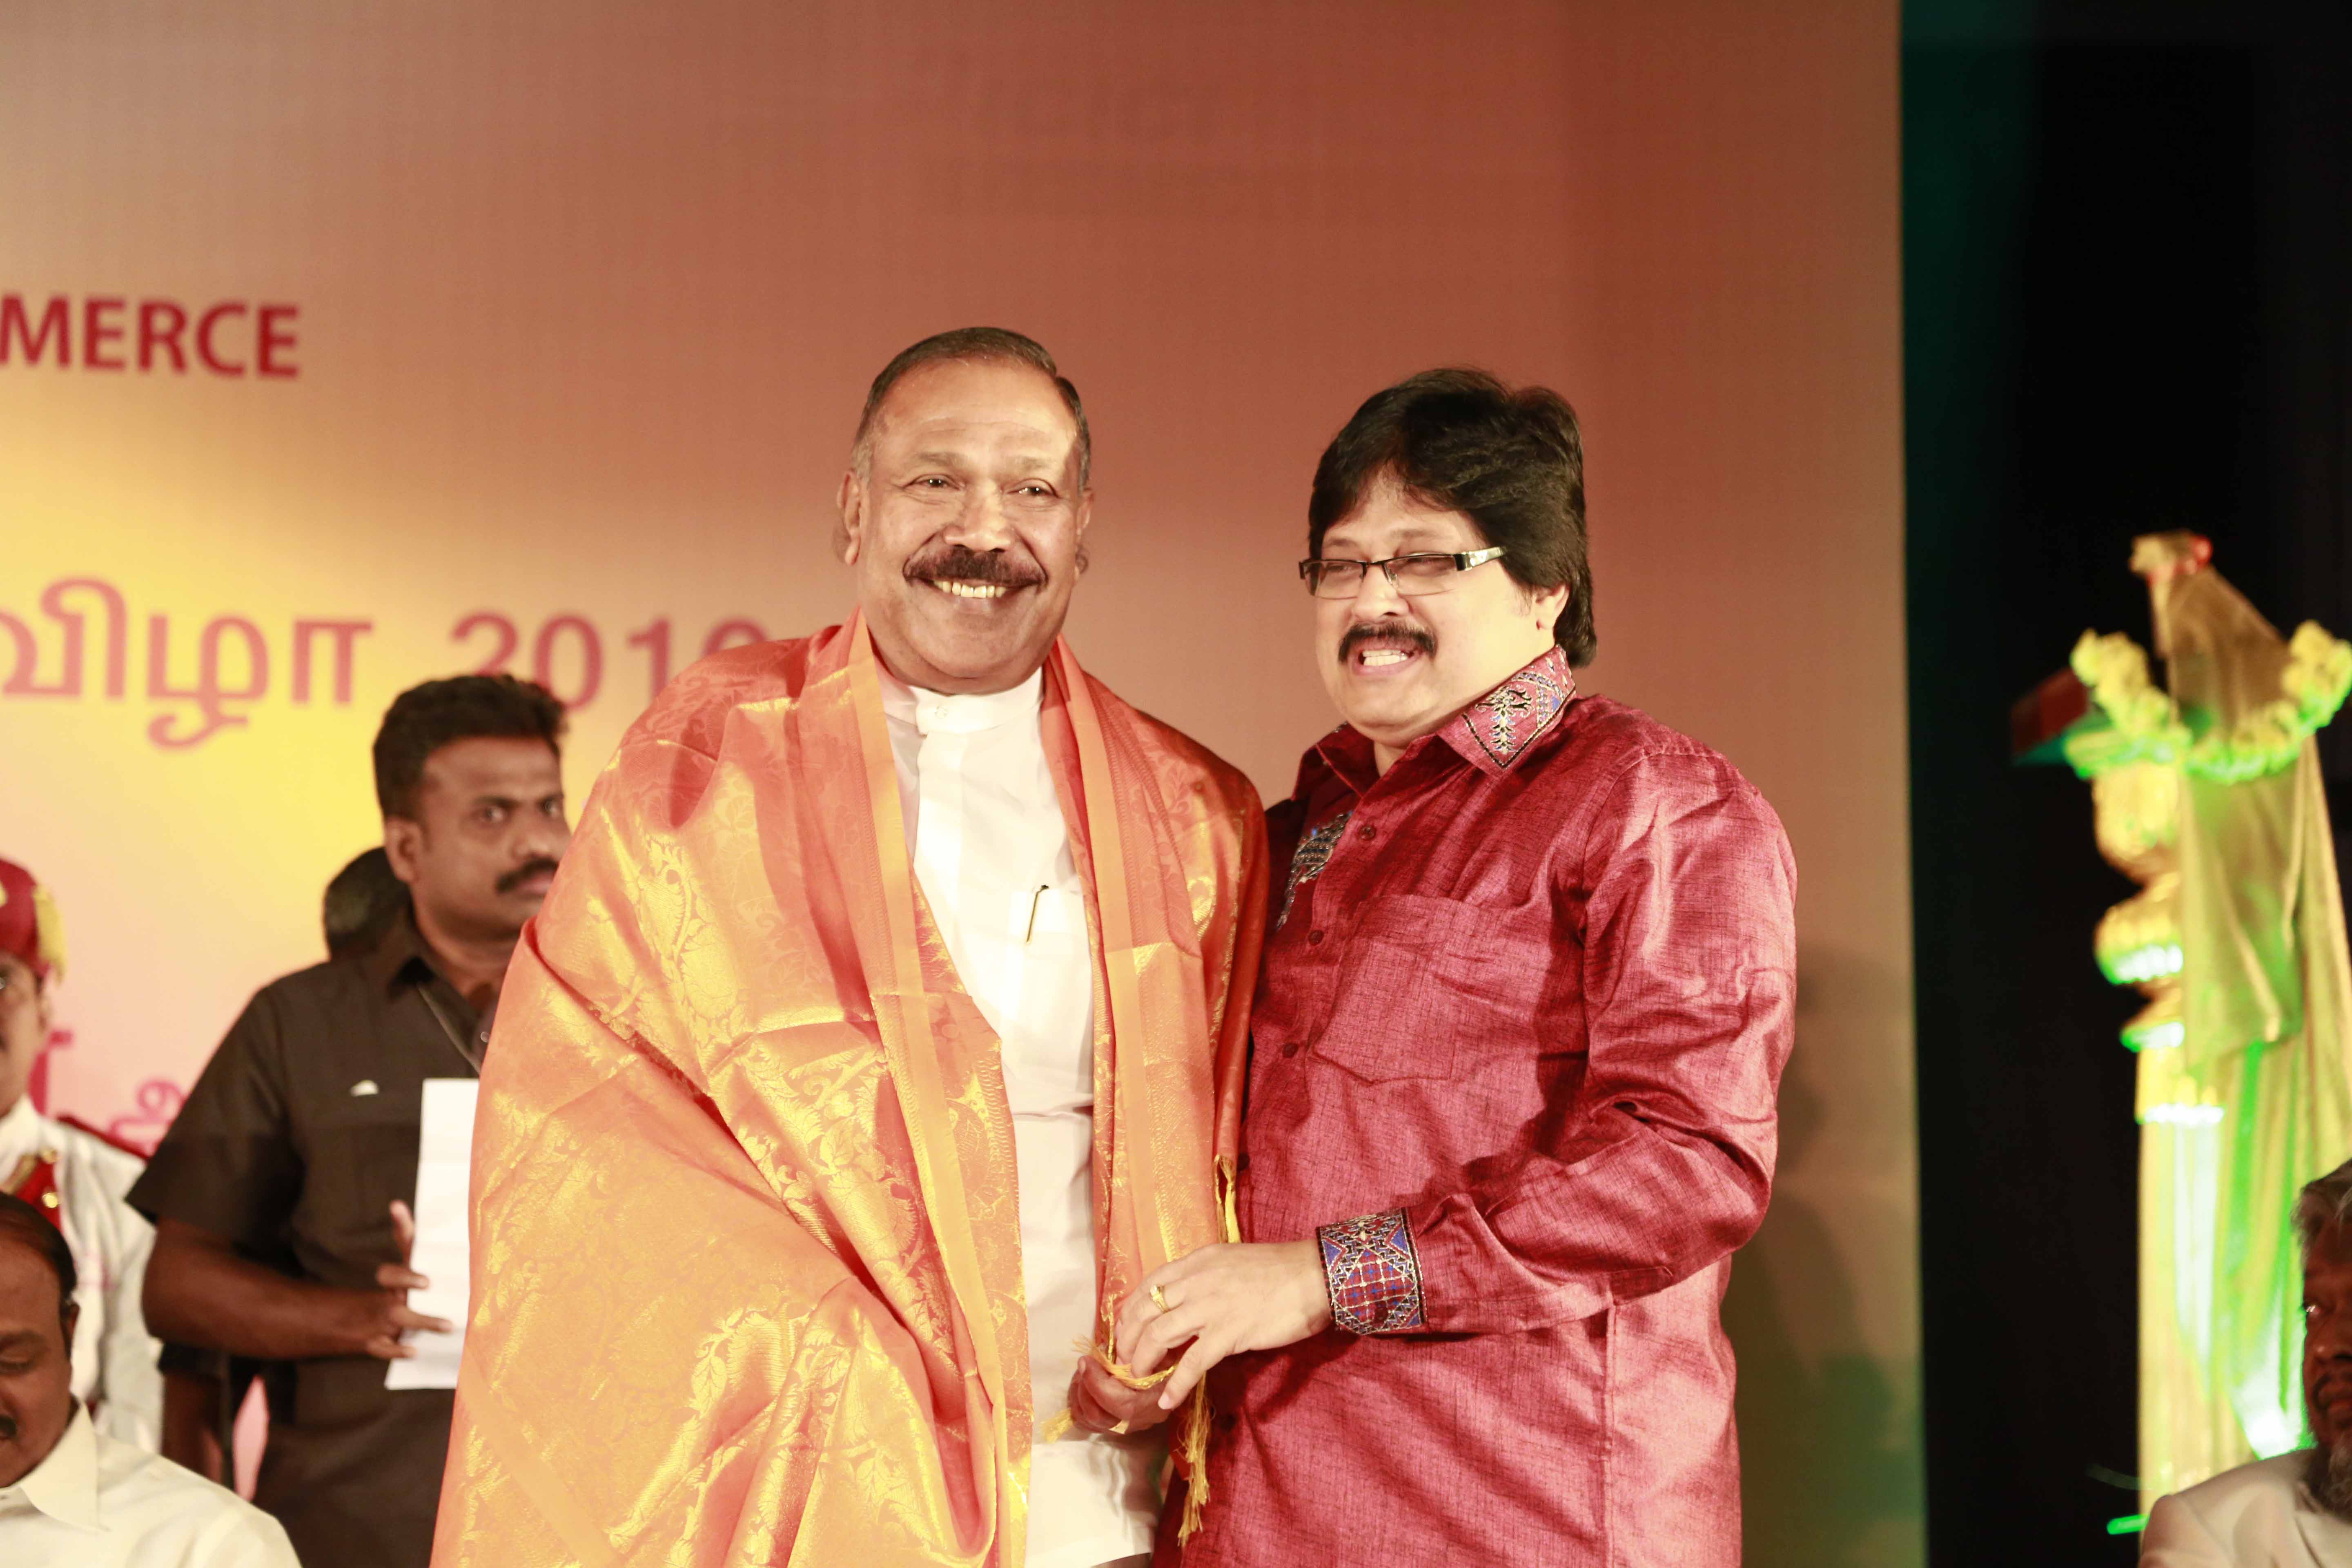 Mr Selvakumar honoring Thiru Radhakrishan, State Education Minister, Srilanka